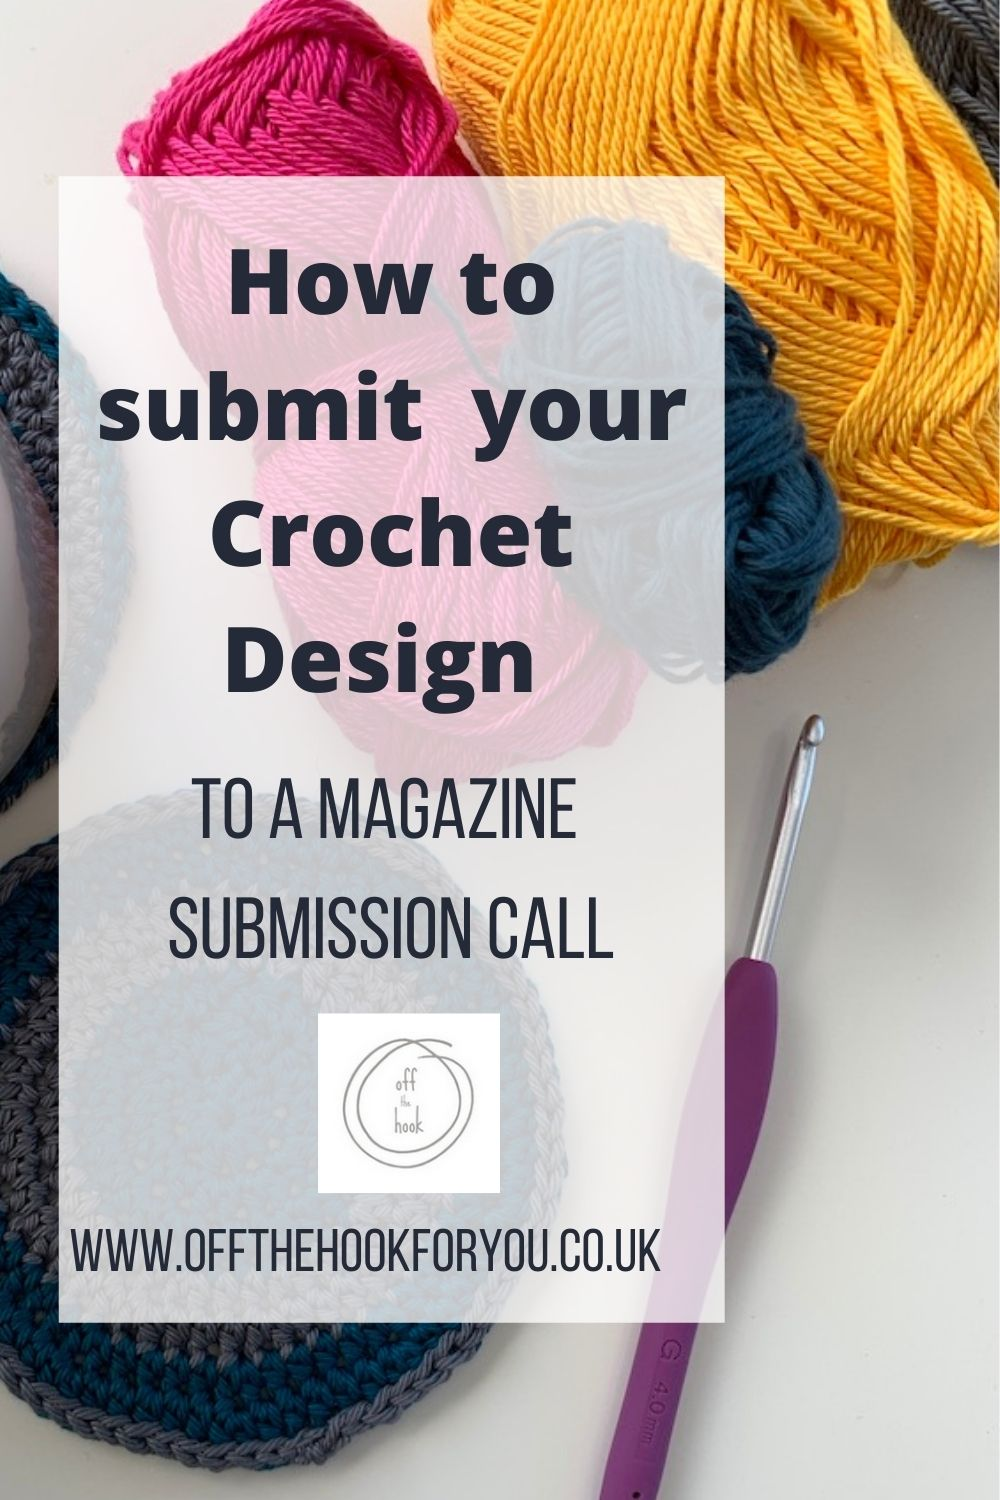 How to be a crochet designer